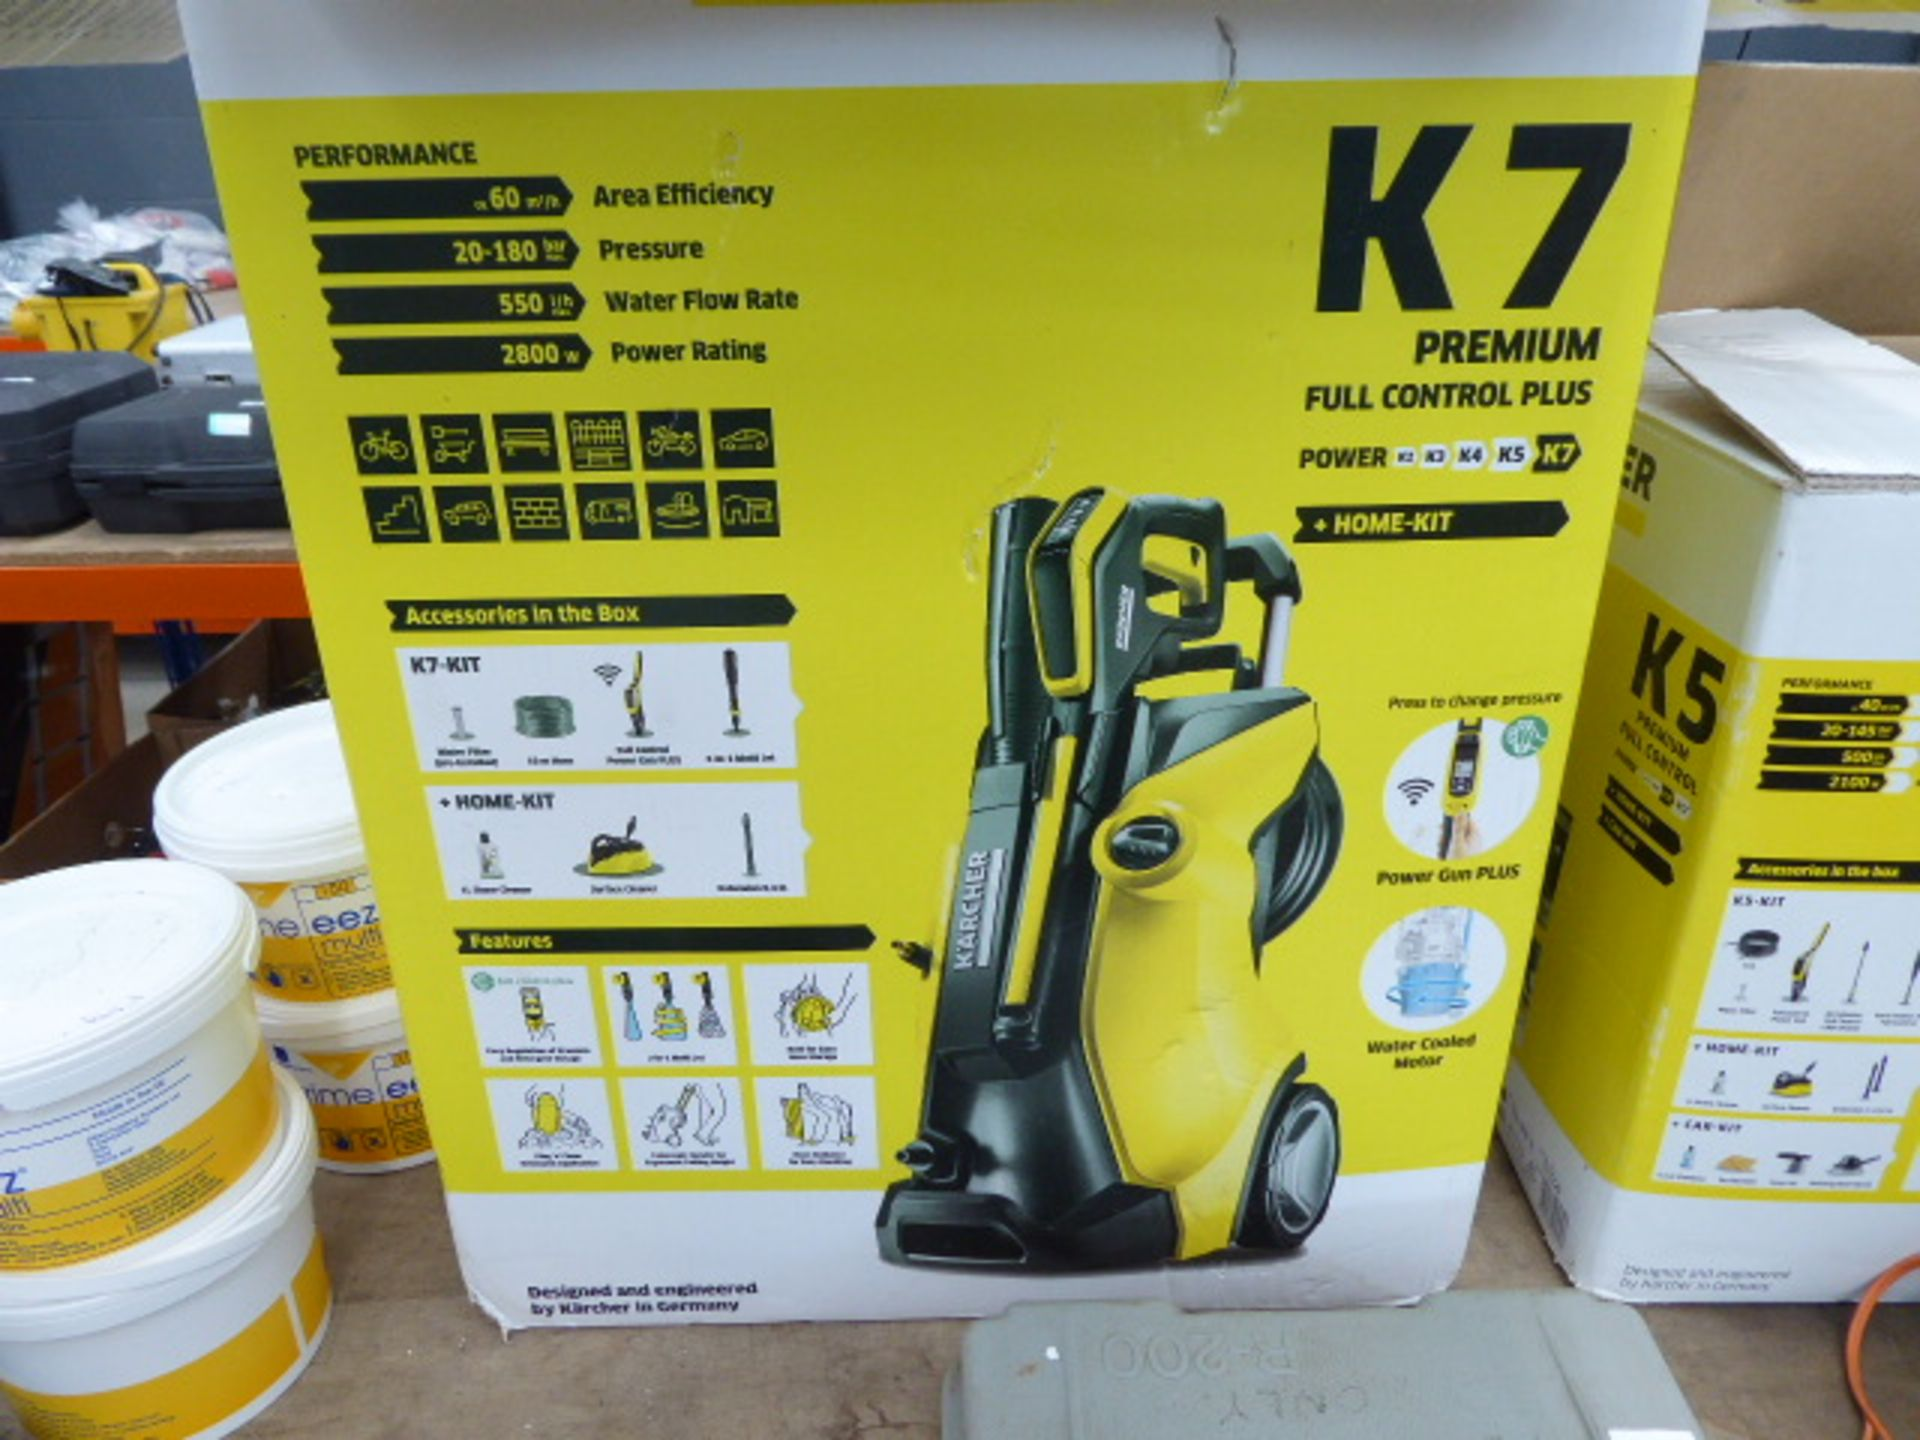 Lot 4485 - 4428 Karcher K7 electric pressure washer, boxed